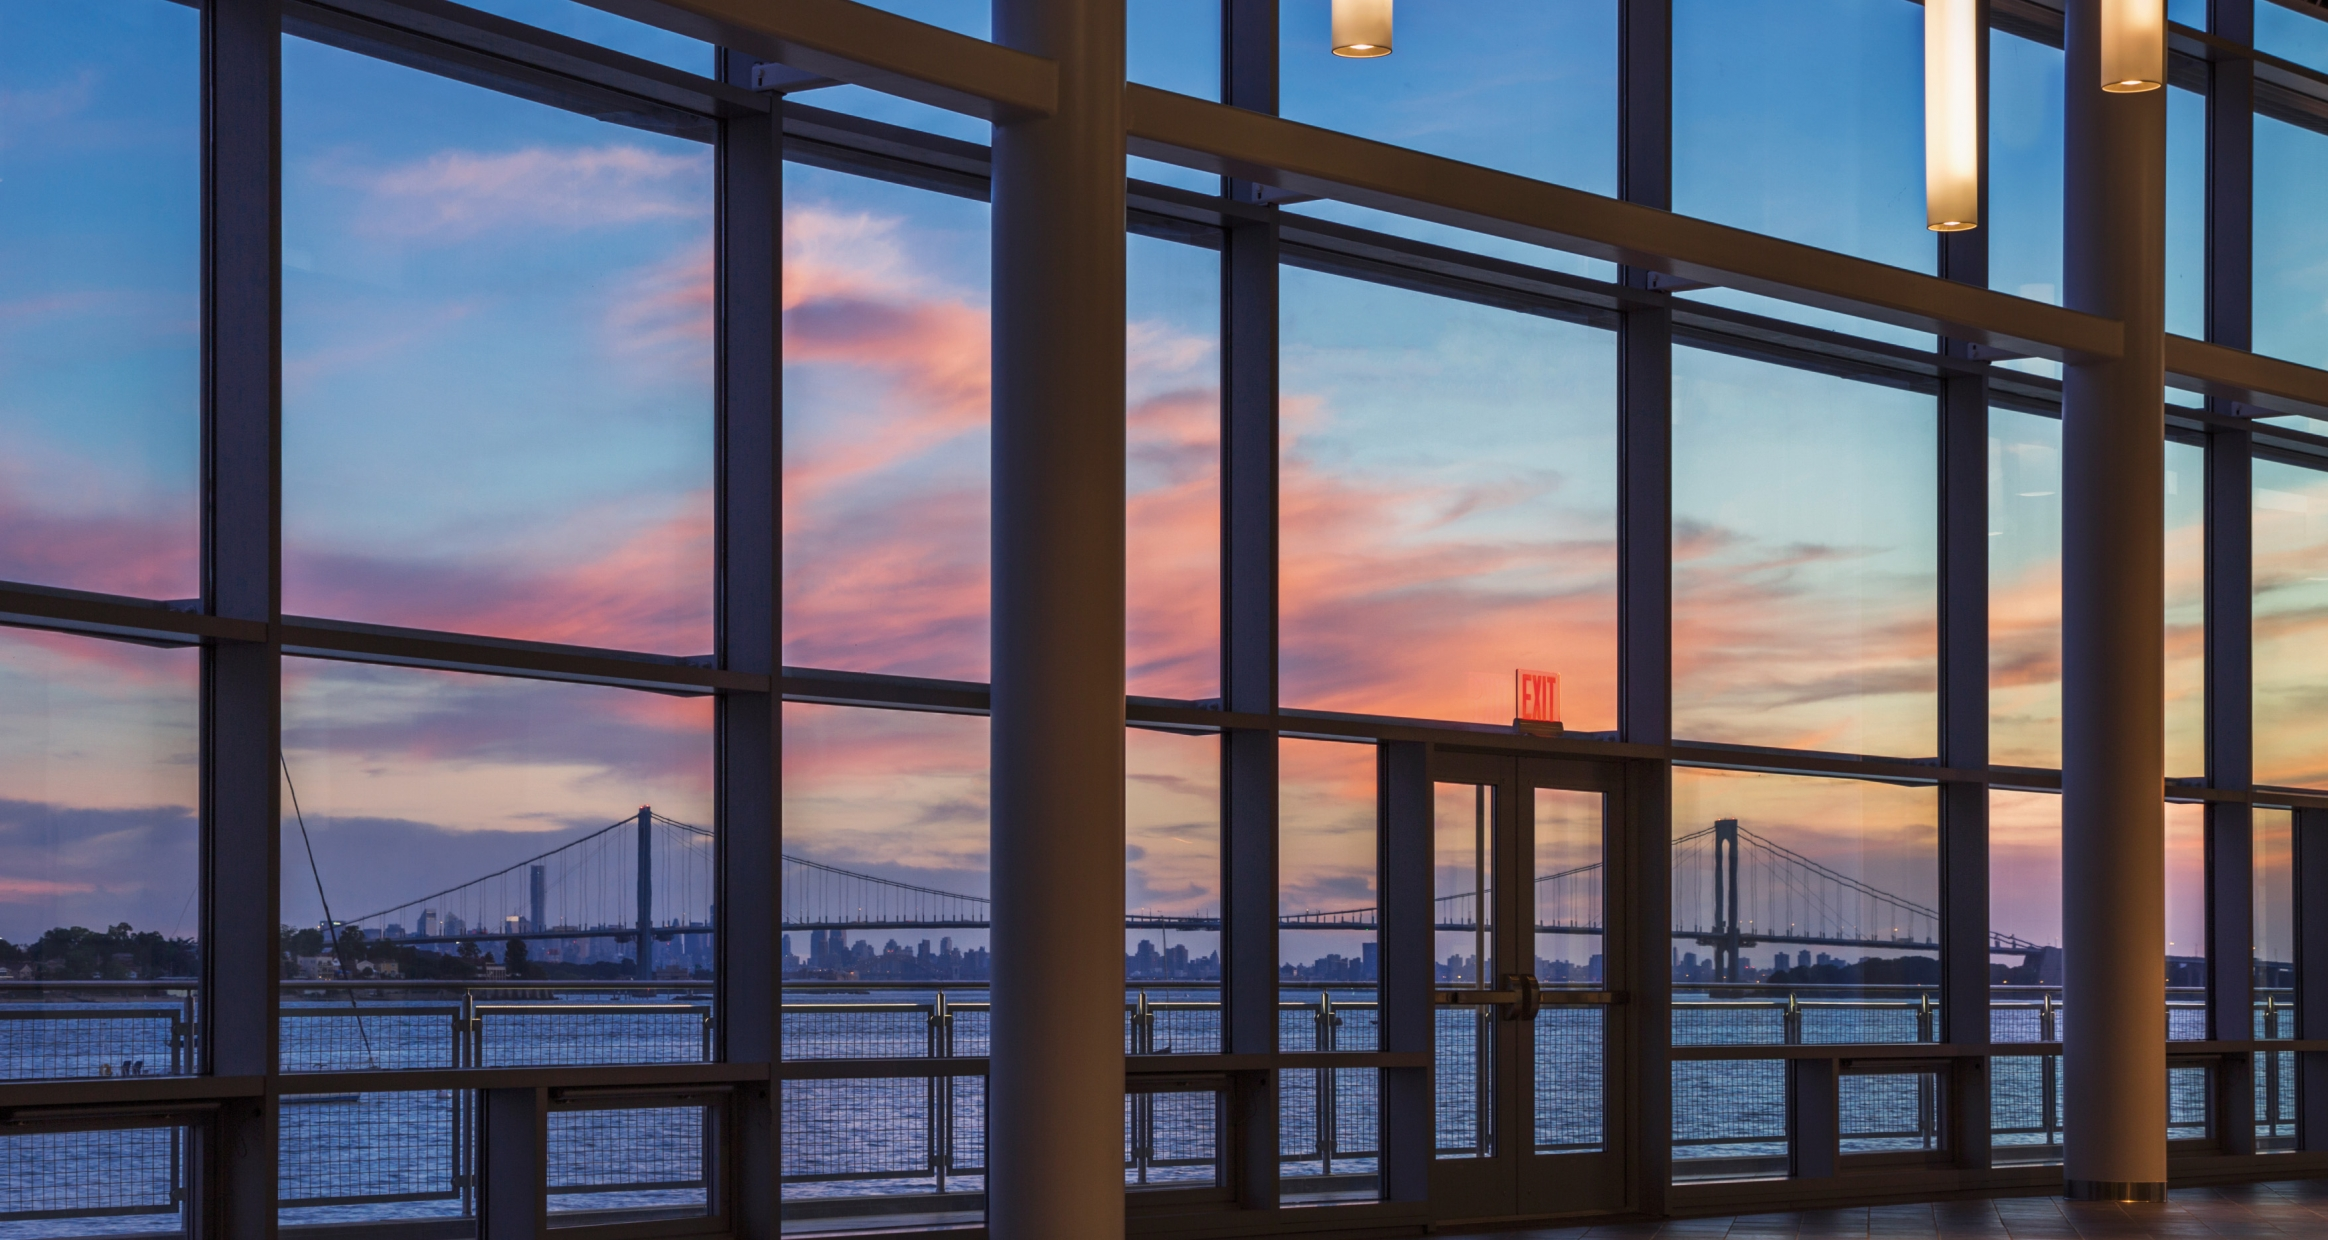 Expansive windows provide ample view of the harbor